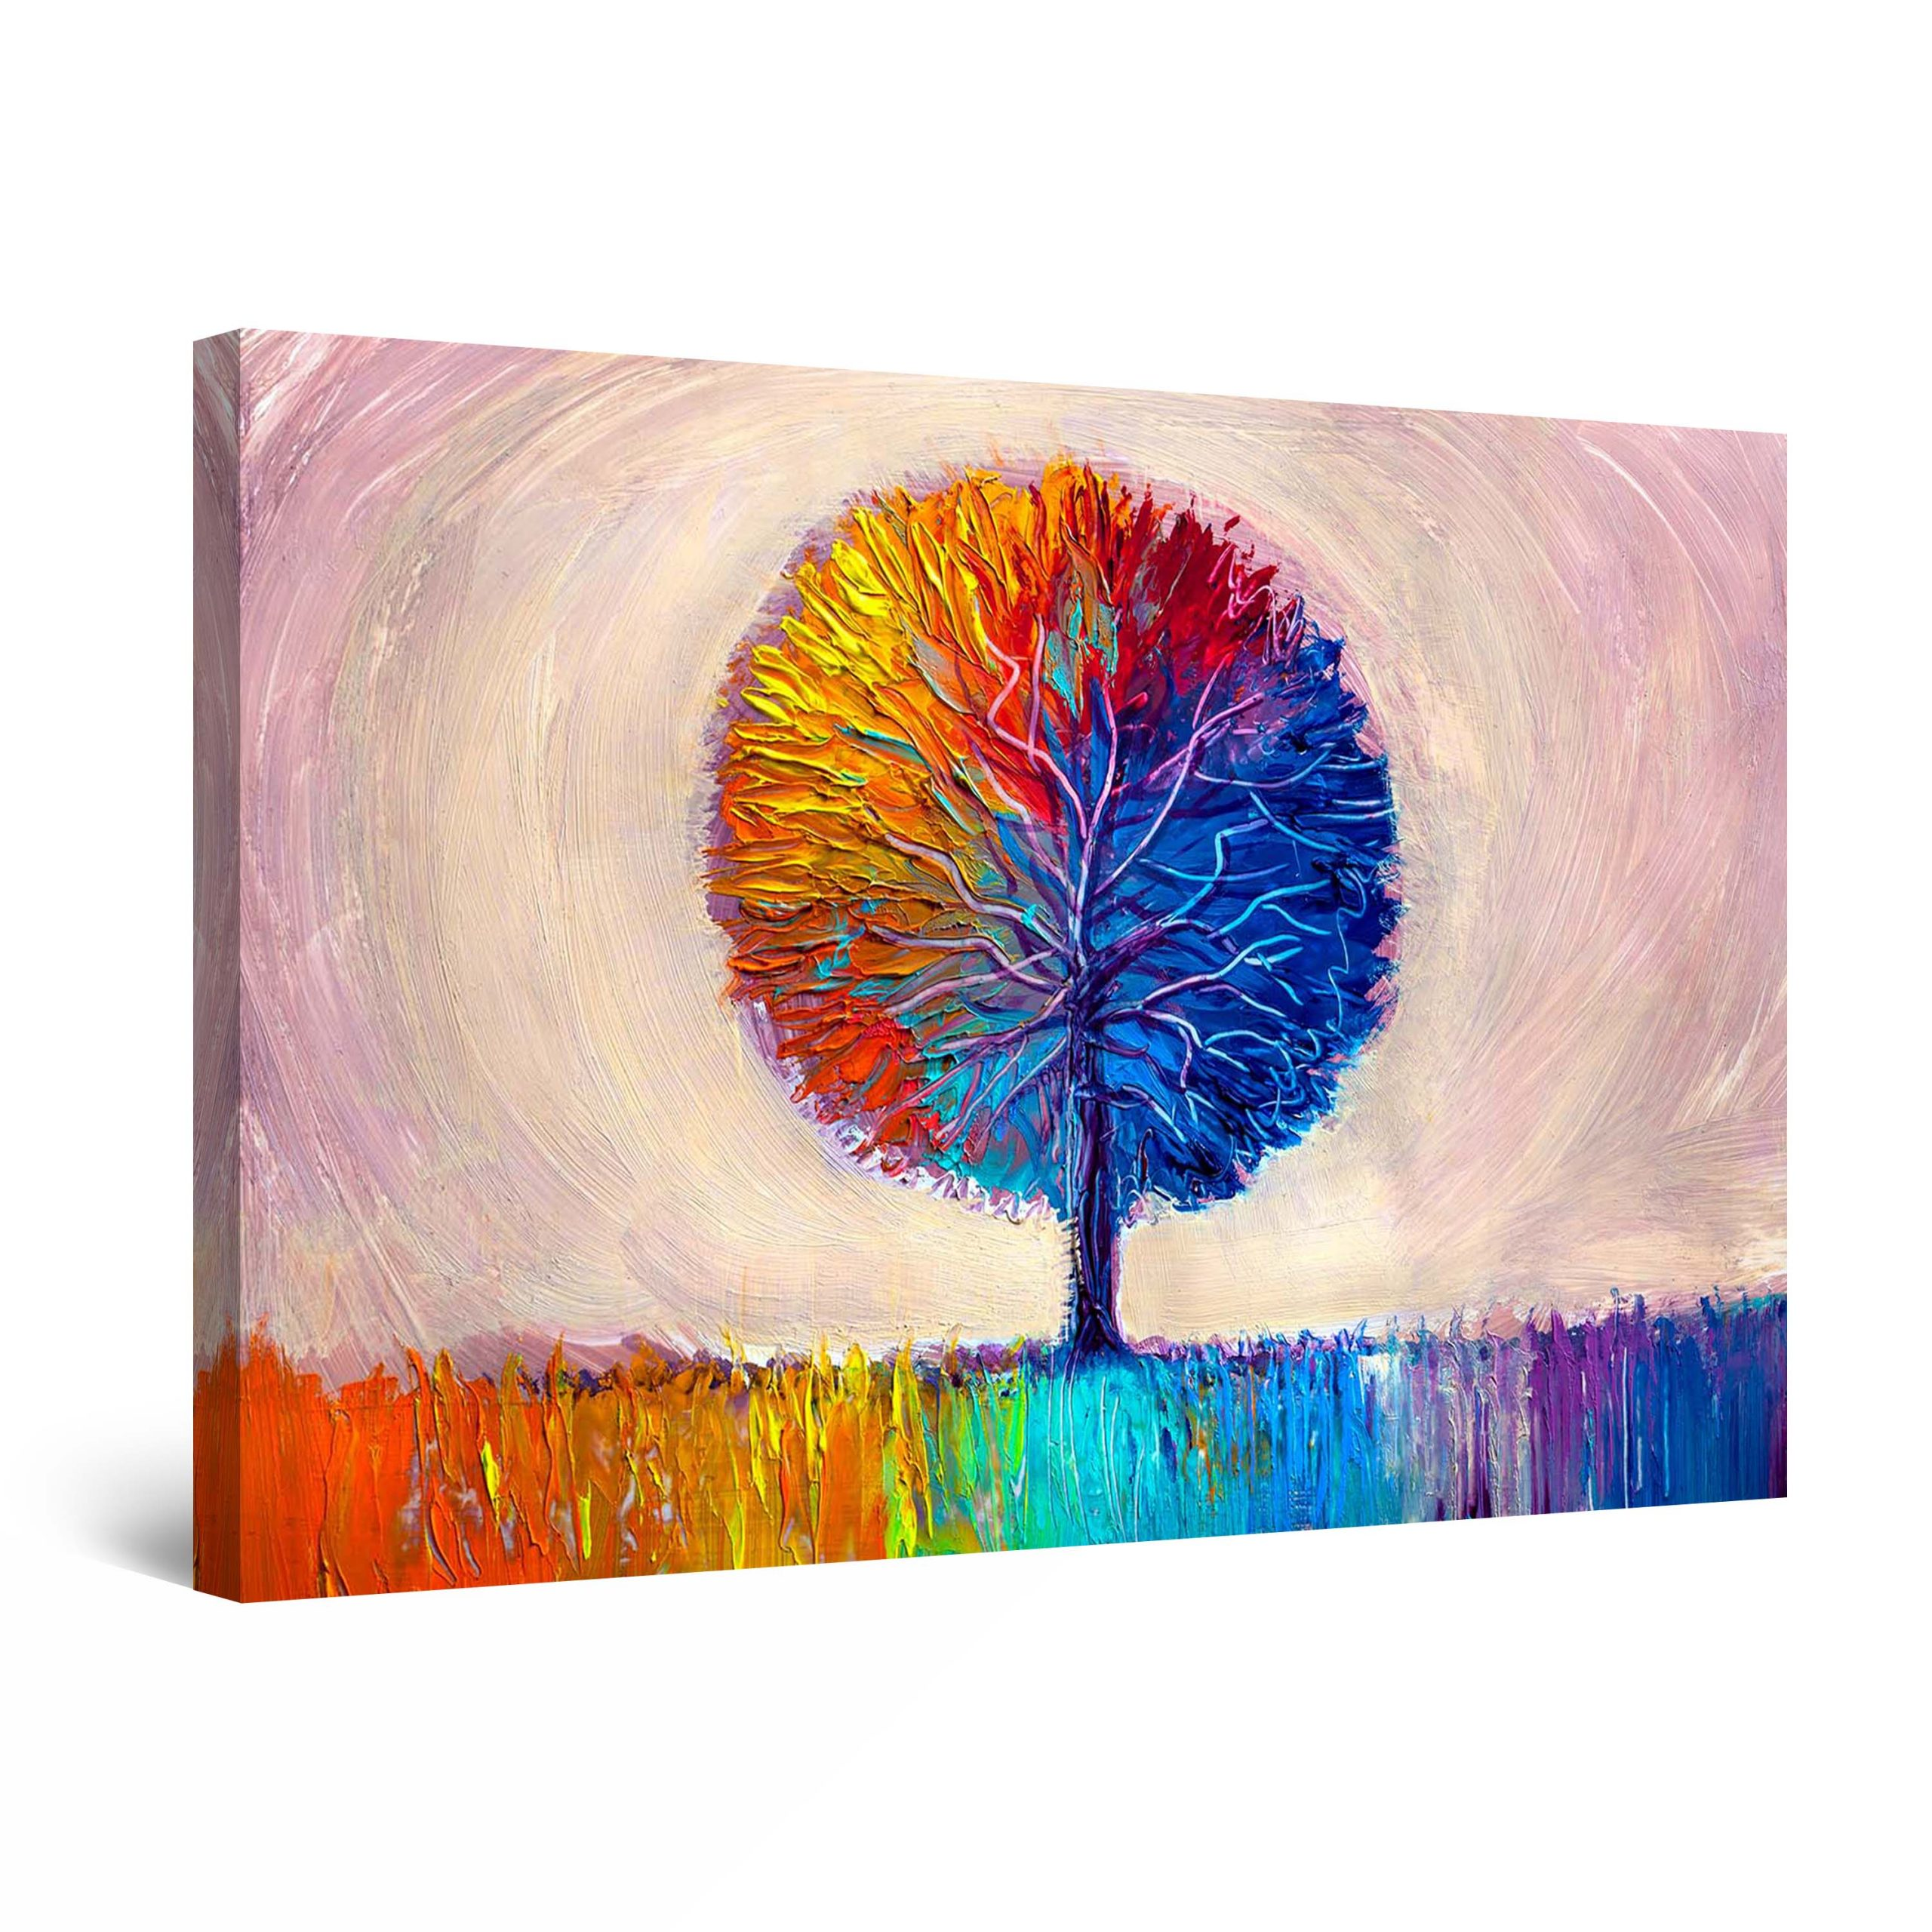 Canvas Wall Art Abstract Lonely Dual Rainbow Tree Painting Red Blue Orange 60 X 90 Cm Lys Og